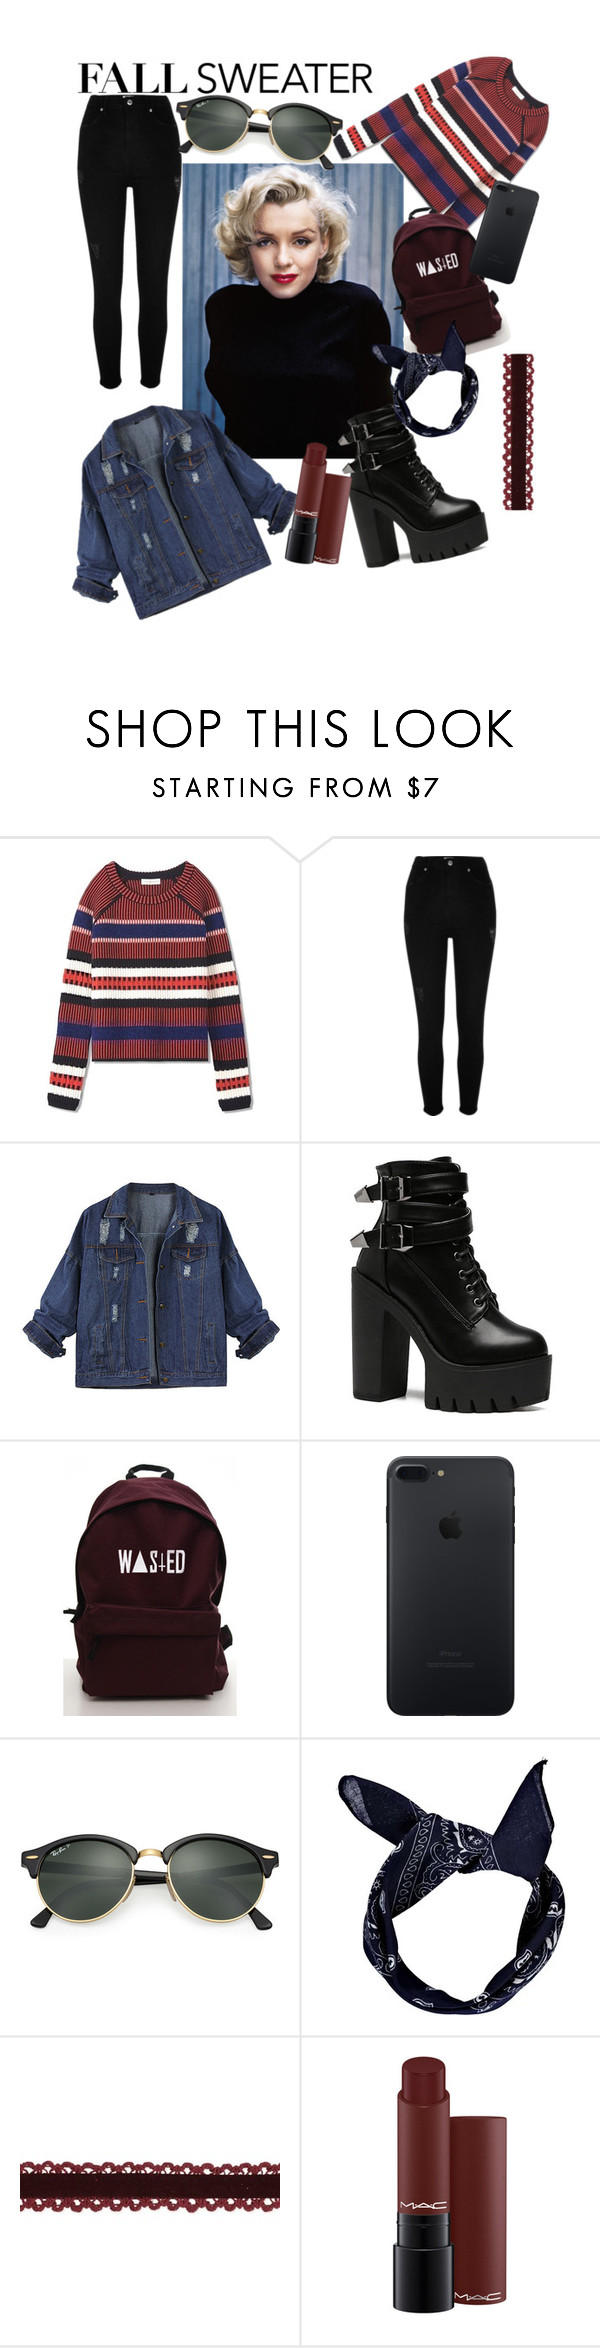 """""""Untitled #30"""" by verakooy ❤ liked on Polyvore featuring Tory Burch, River Island, Ray-Ban and Boohoo"""